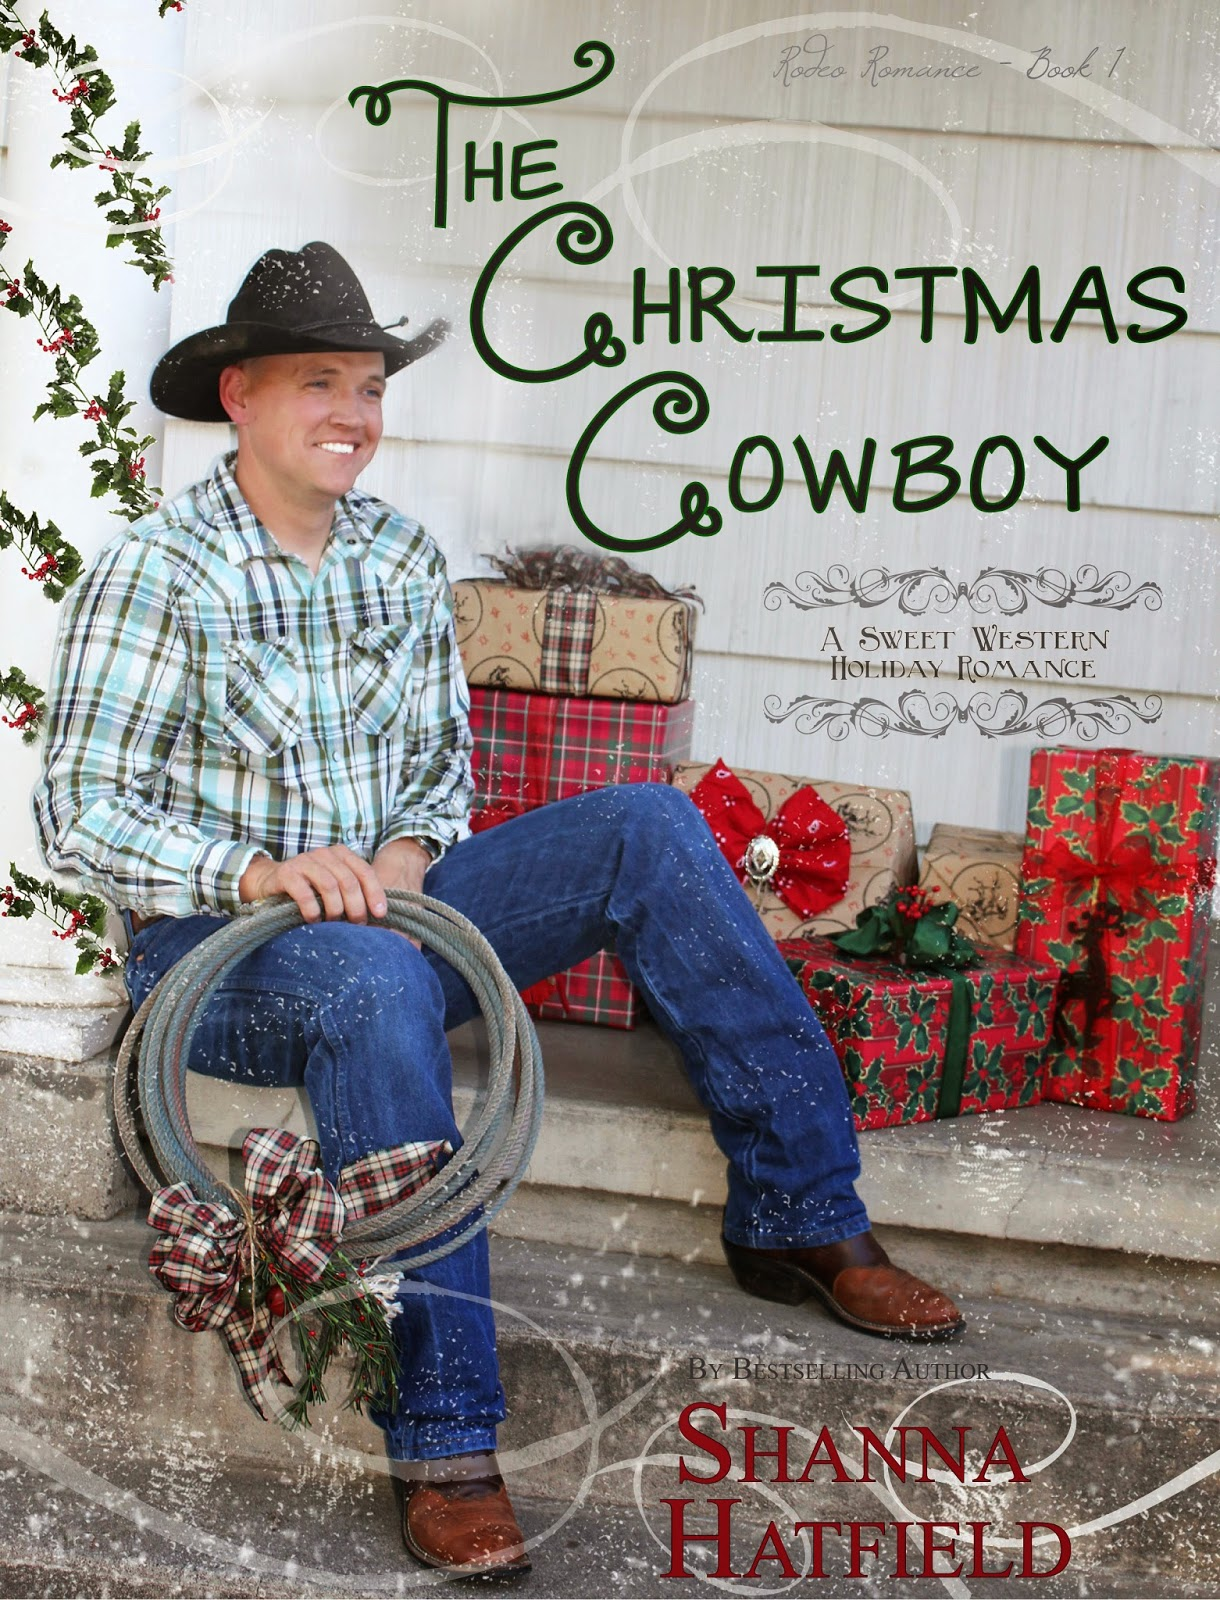 http://www.amazon.com/Christmas-Cowboy-Western-Holiday-Romance-ebook/dp/B00FYAXJXG/ref=sr_1_1?ie=UTF8&qid=1417629436&sr=8-1&keywords=the+christmas+cowboy